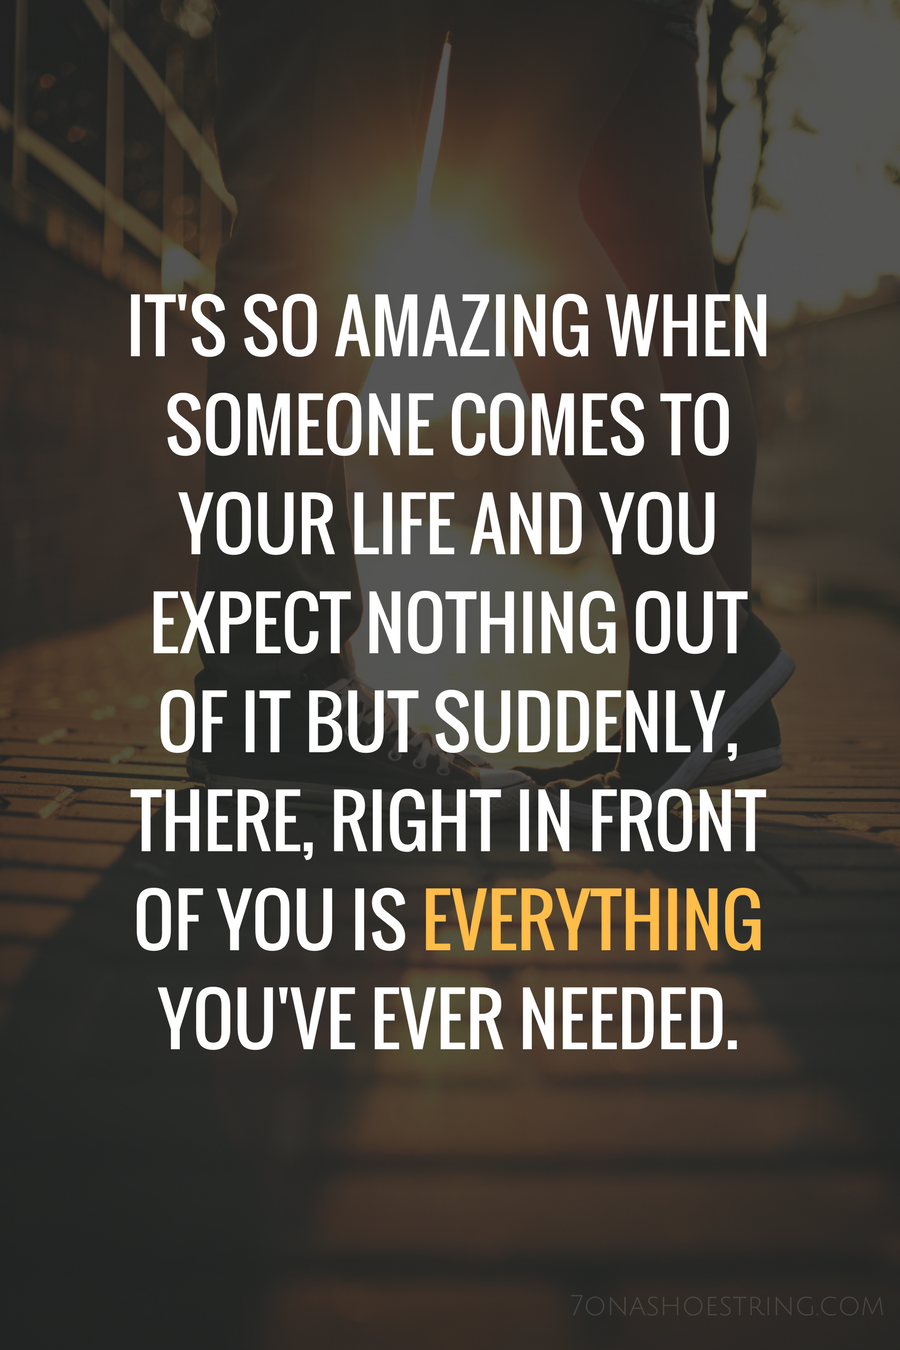 Incroyable Itu0027s So Amazing When Someone Comes To Your Life And You Expect Nothing Of  It,